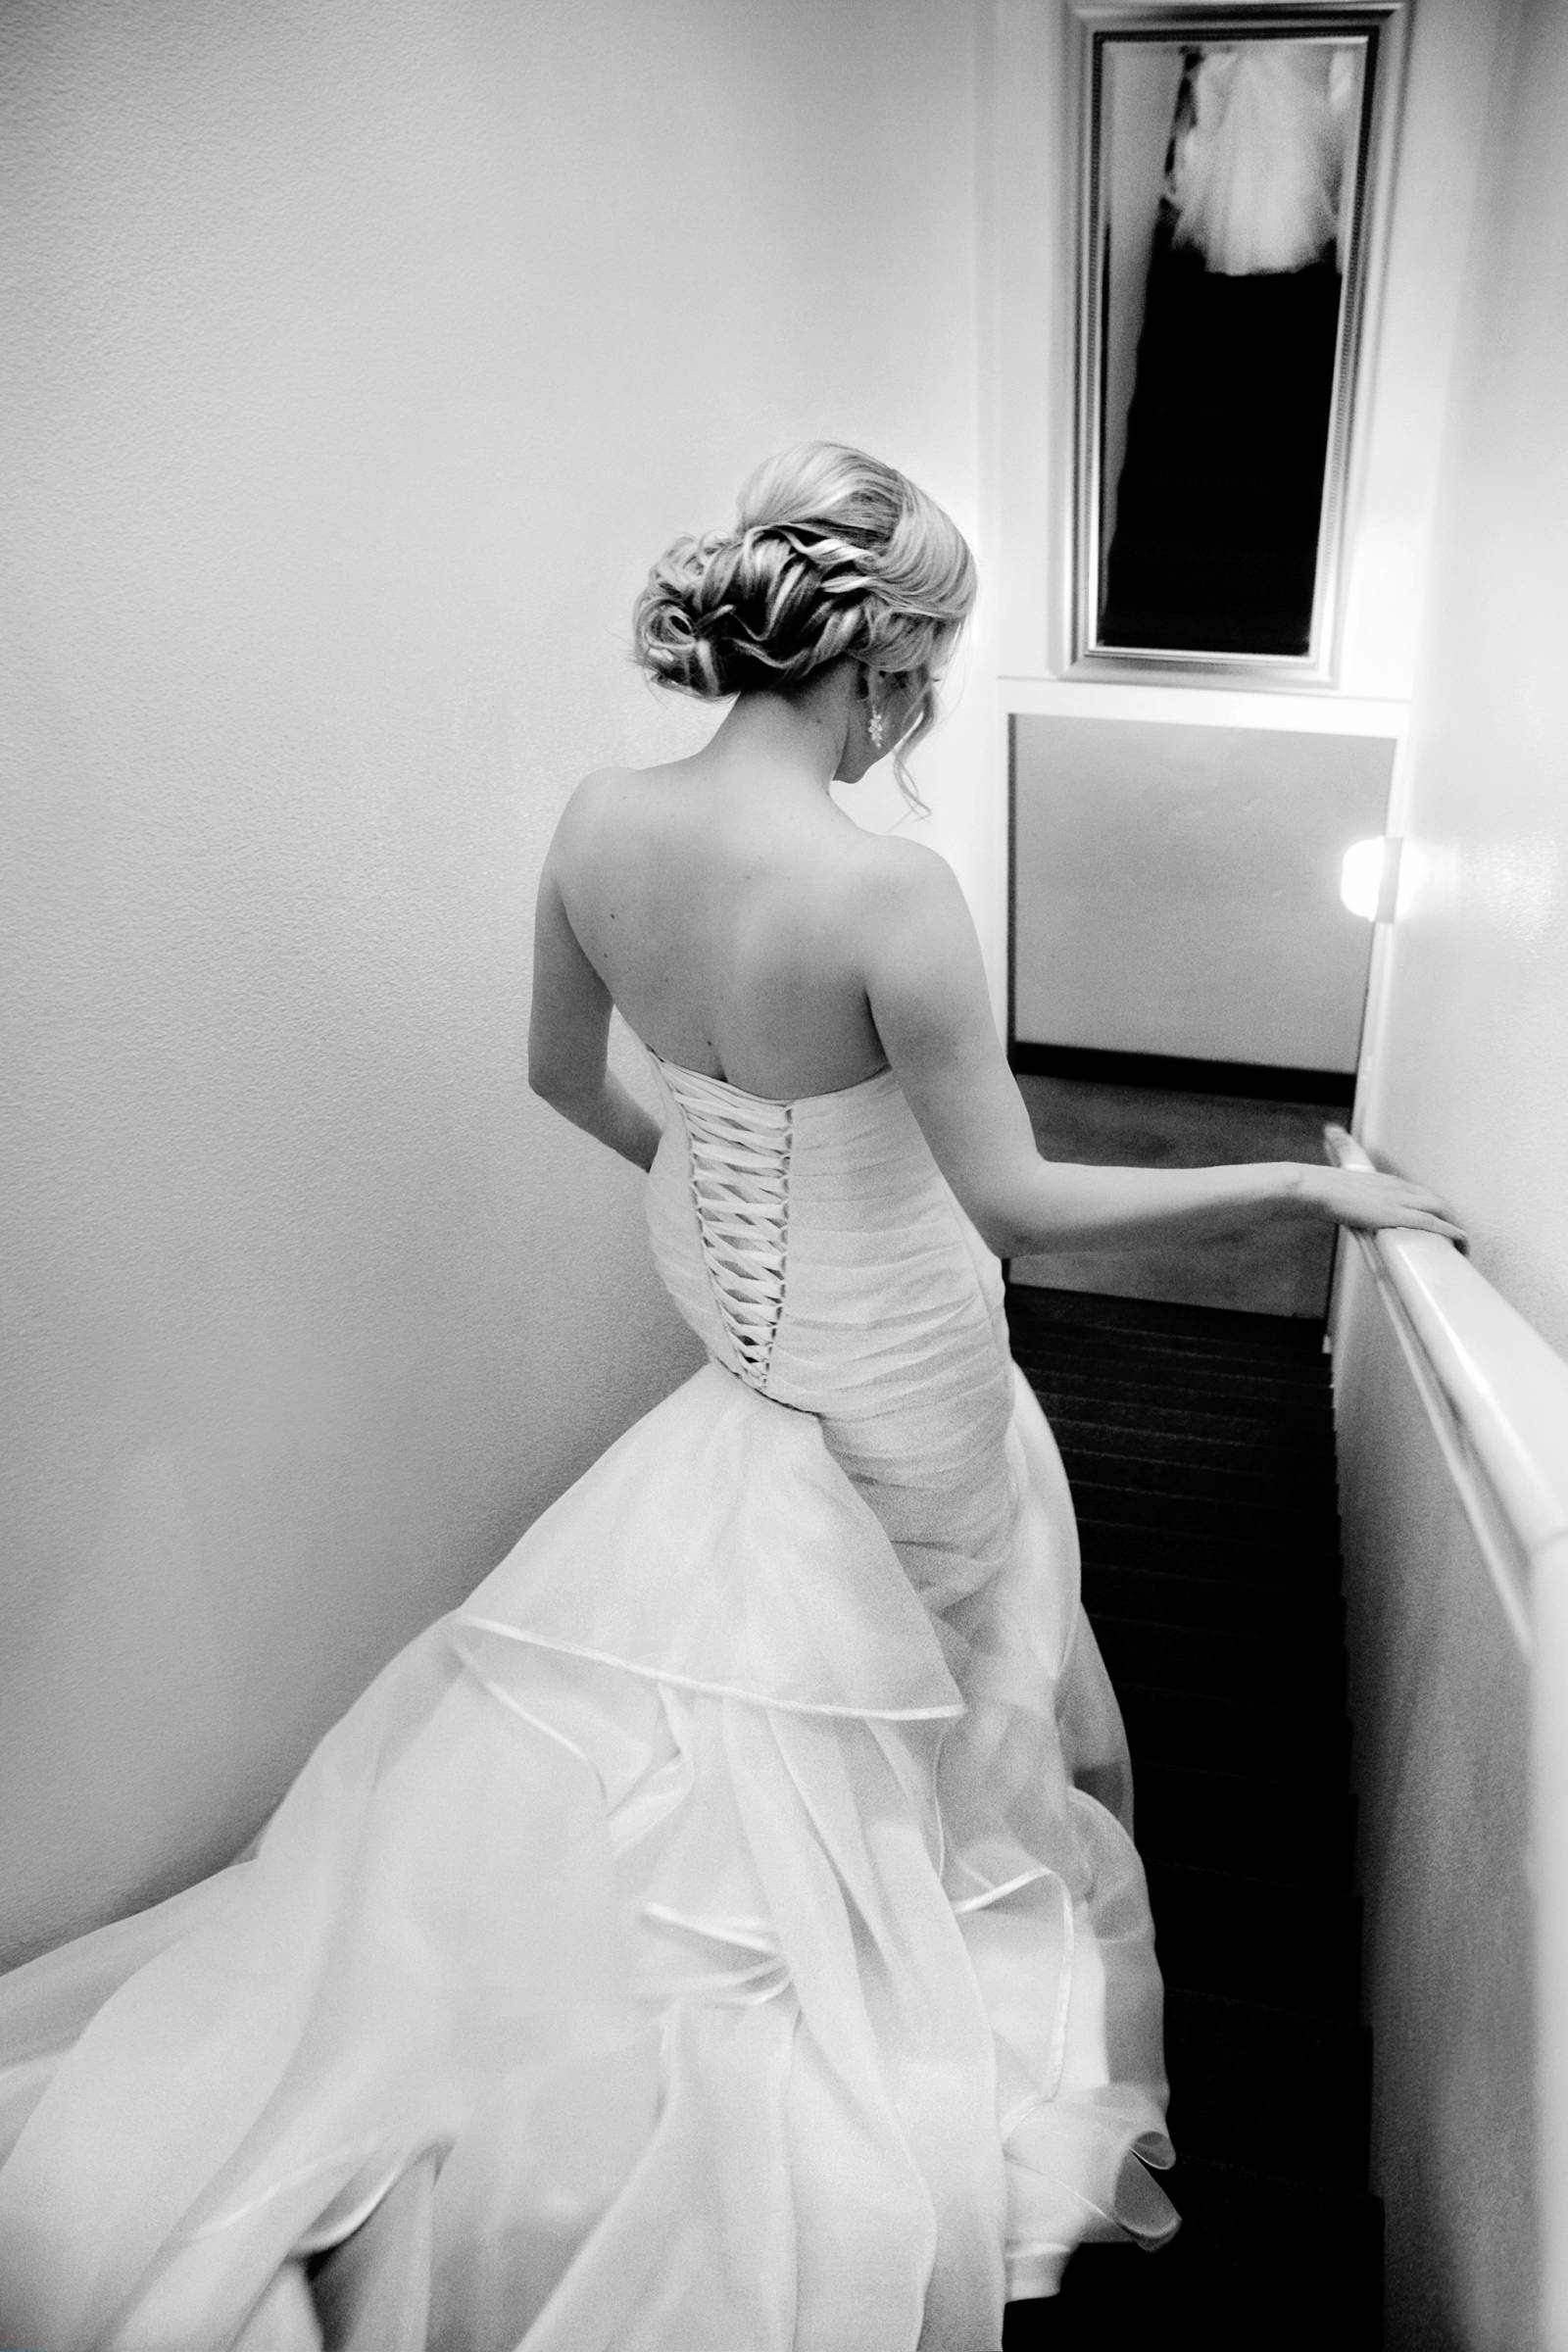 Tana Photography captures black and white photo of bride walking down stairs in wedding dress